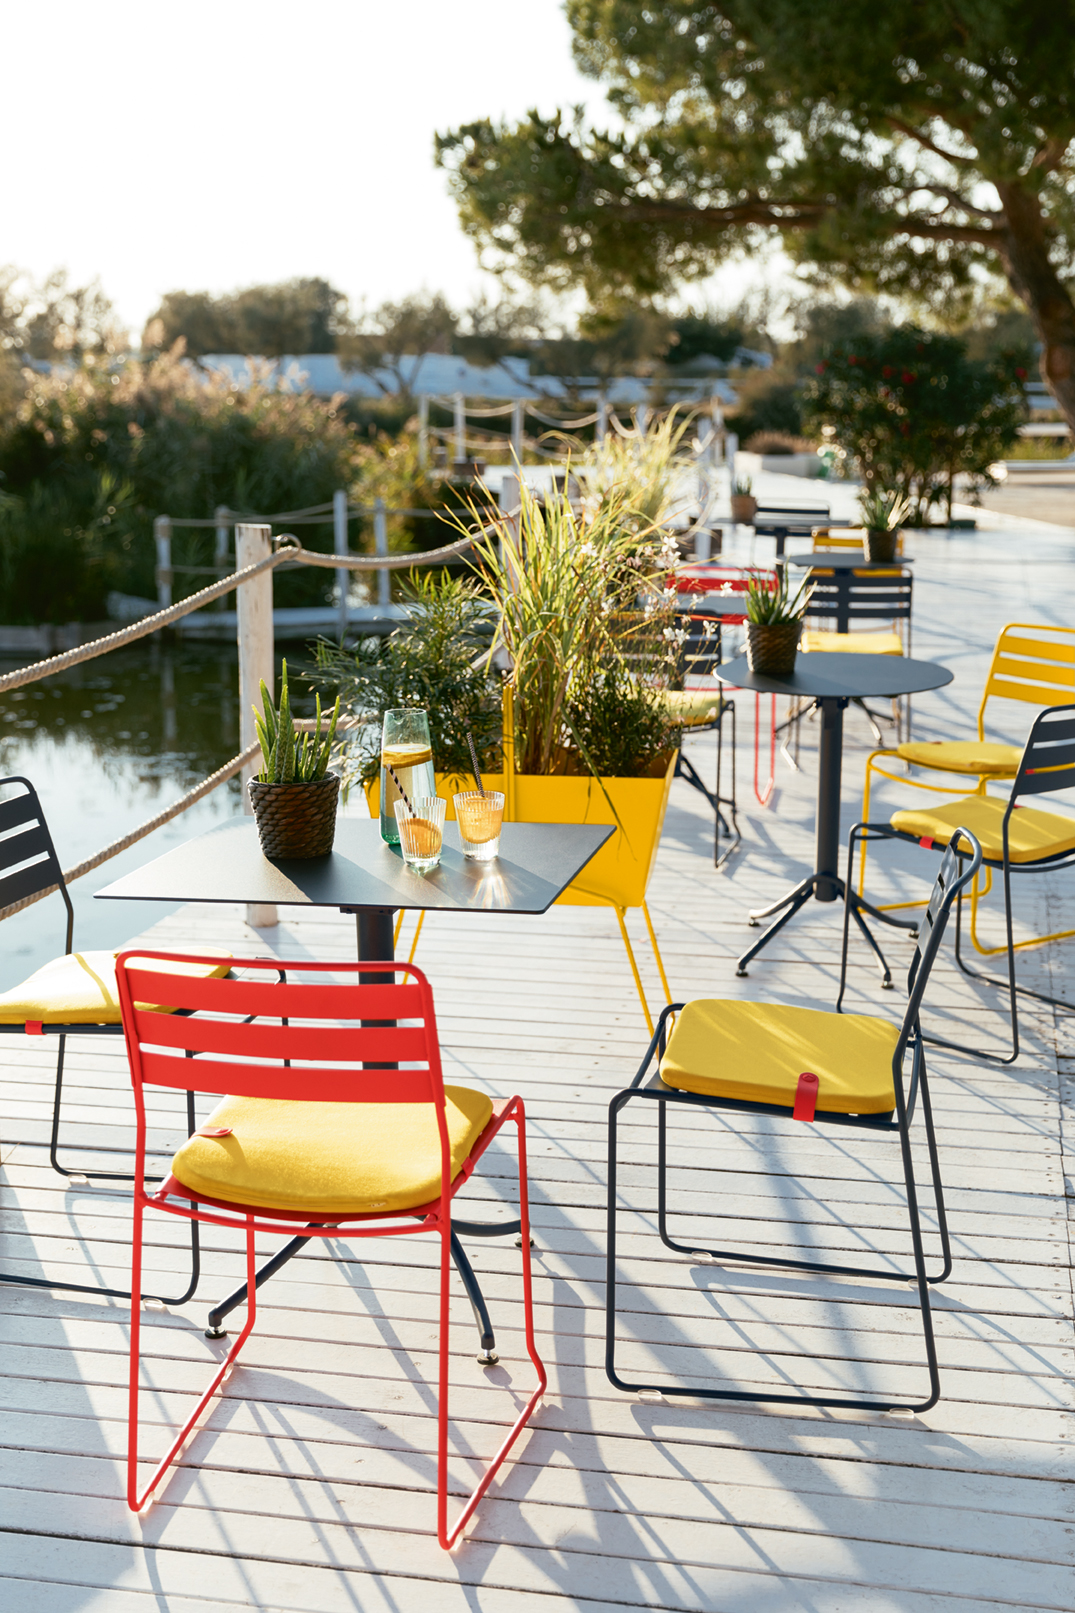 chaise metal, outdoor furniture, mobilier exterieur, oudoor chair, fermob chair, table metal pliante, terrasse restaurant